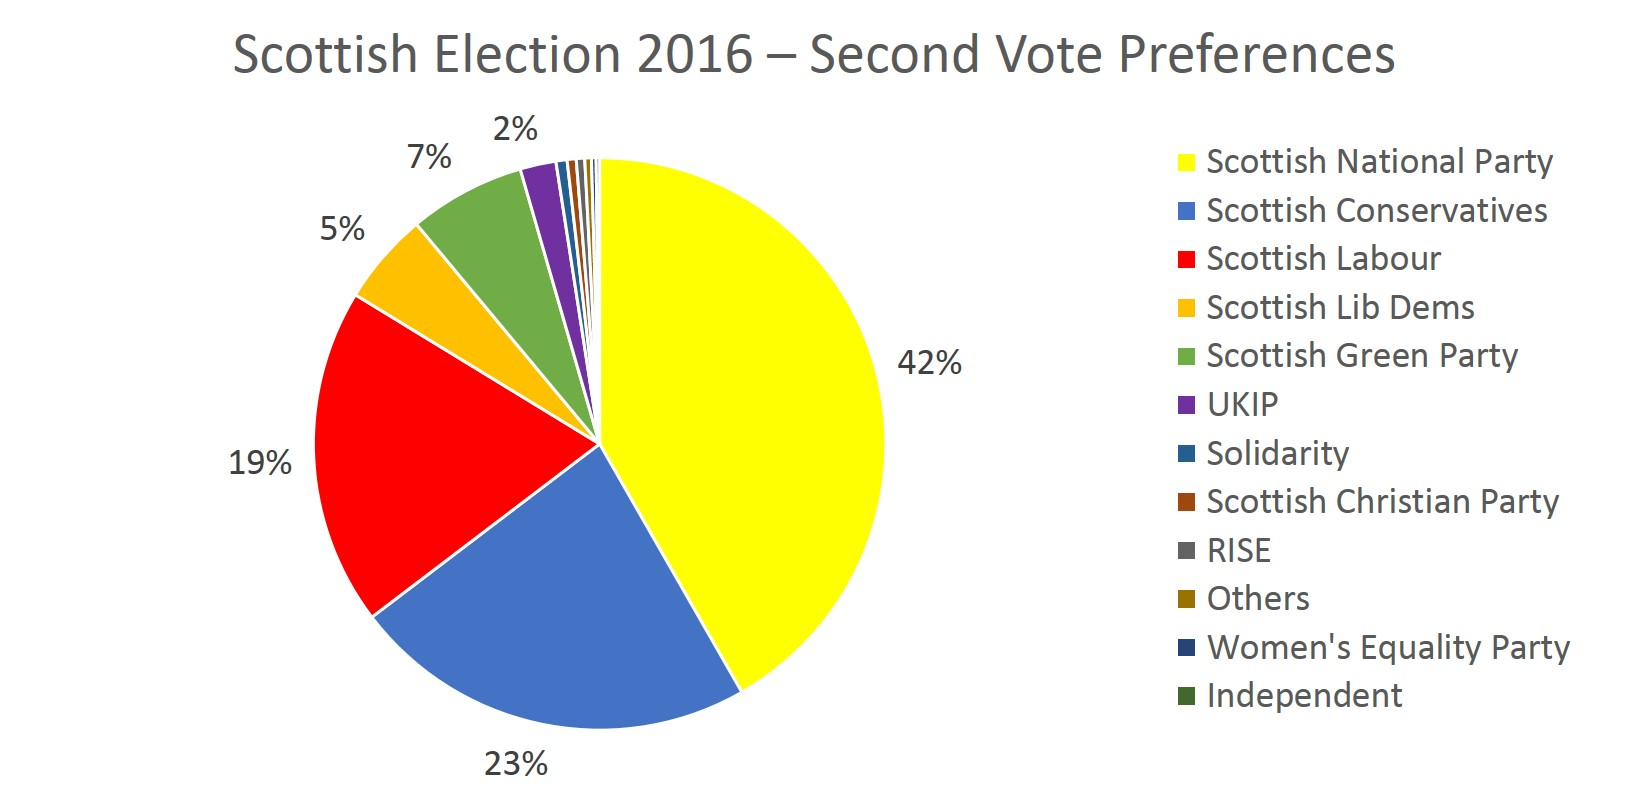 Scottish Election 2016 Second Vote Preferences